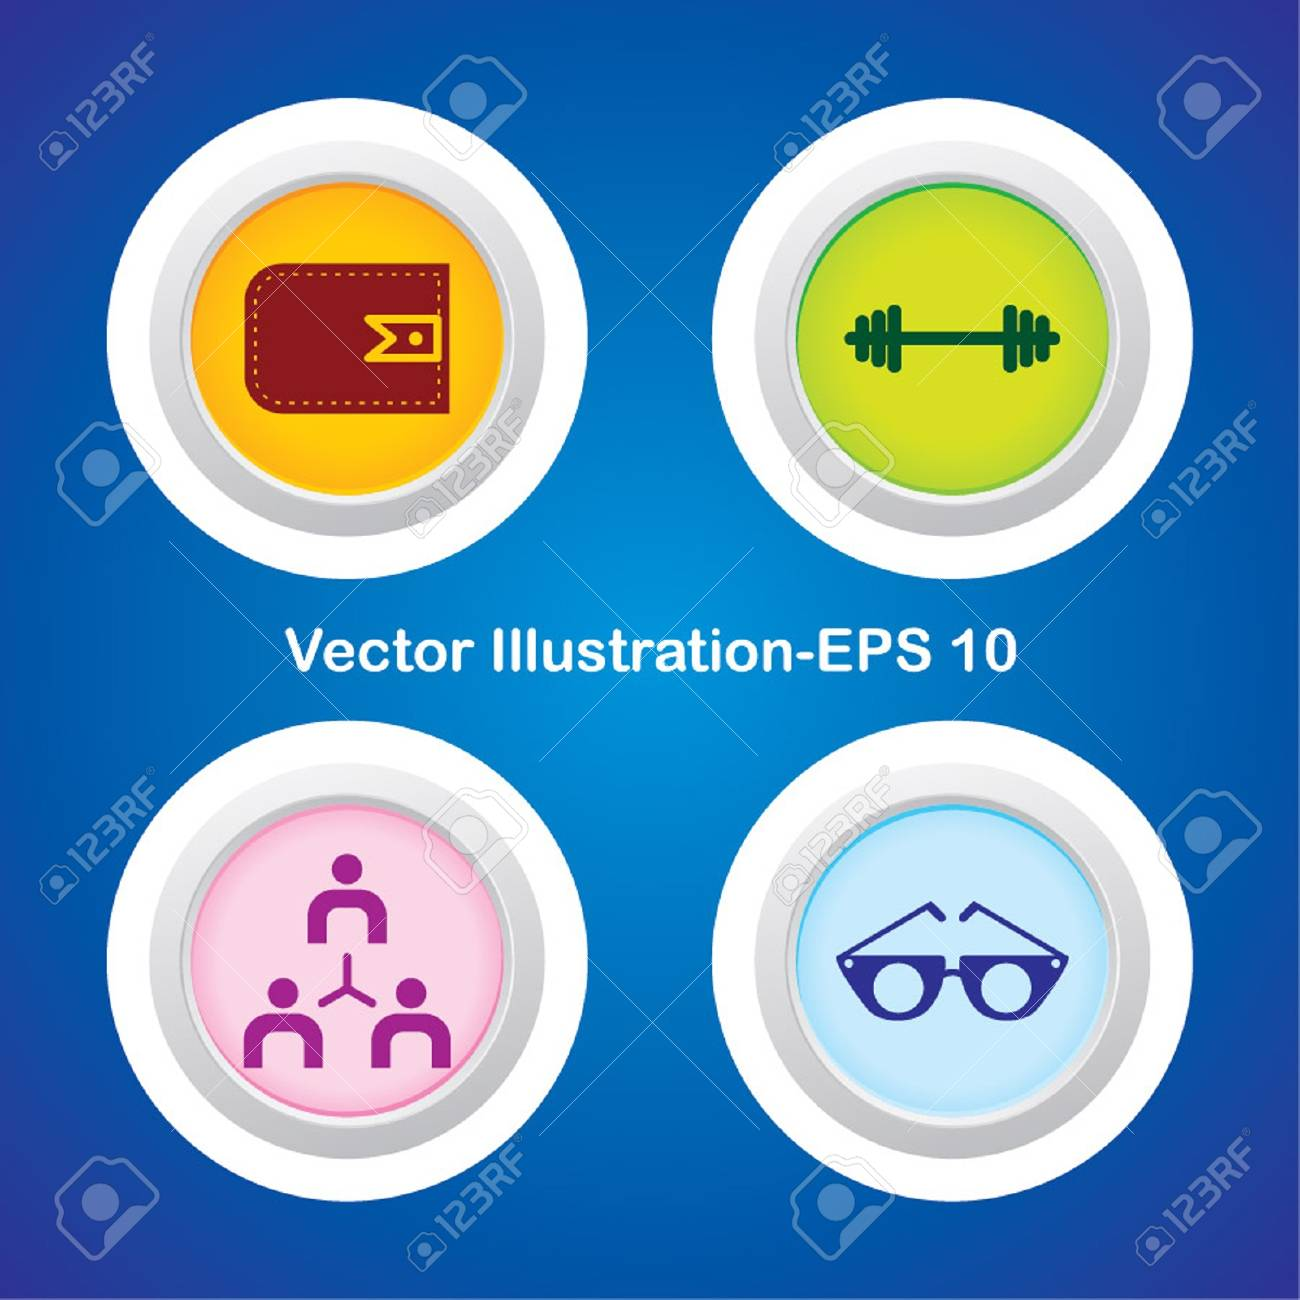 Four Vector Buttons with Very Useful Web Icons Stock Vector - 21700158